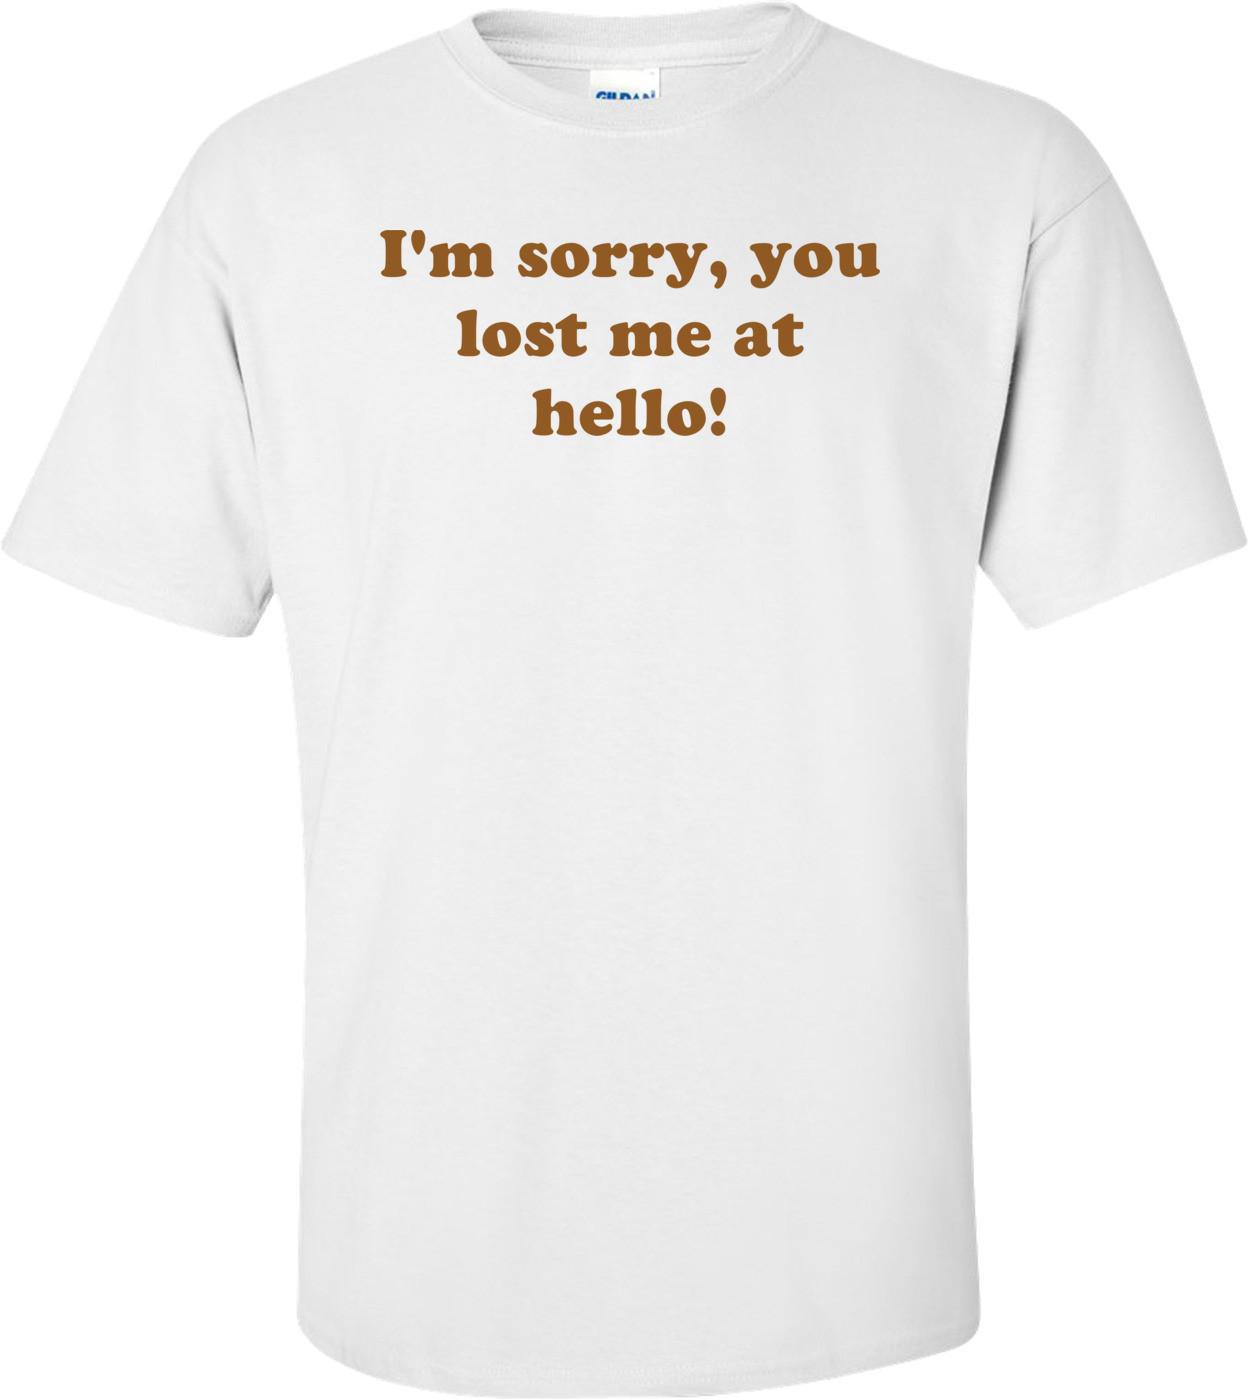 I'm sorry, you lost me at hello! Shirt